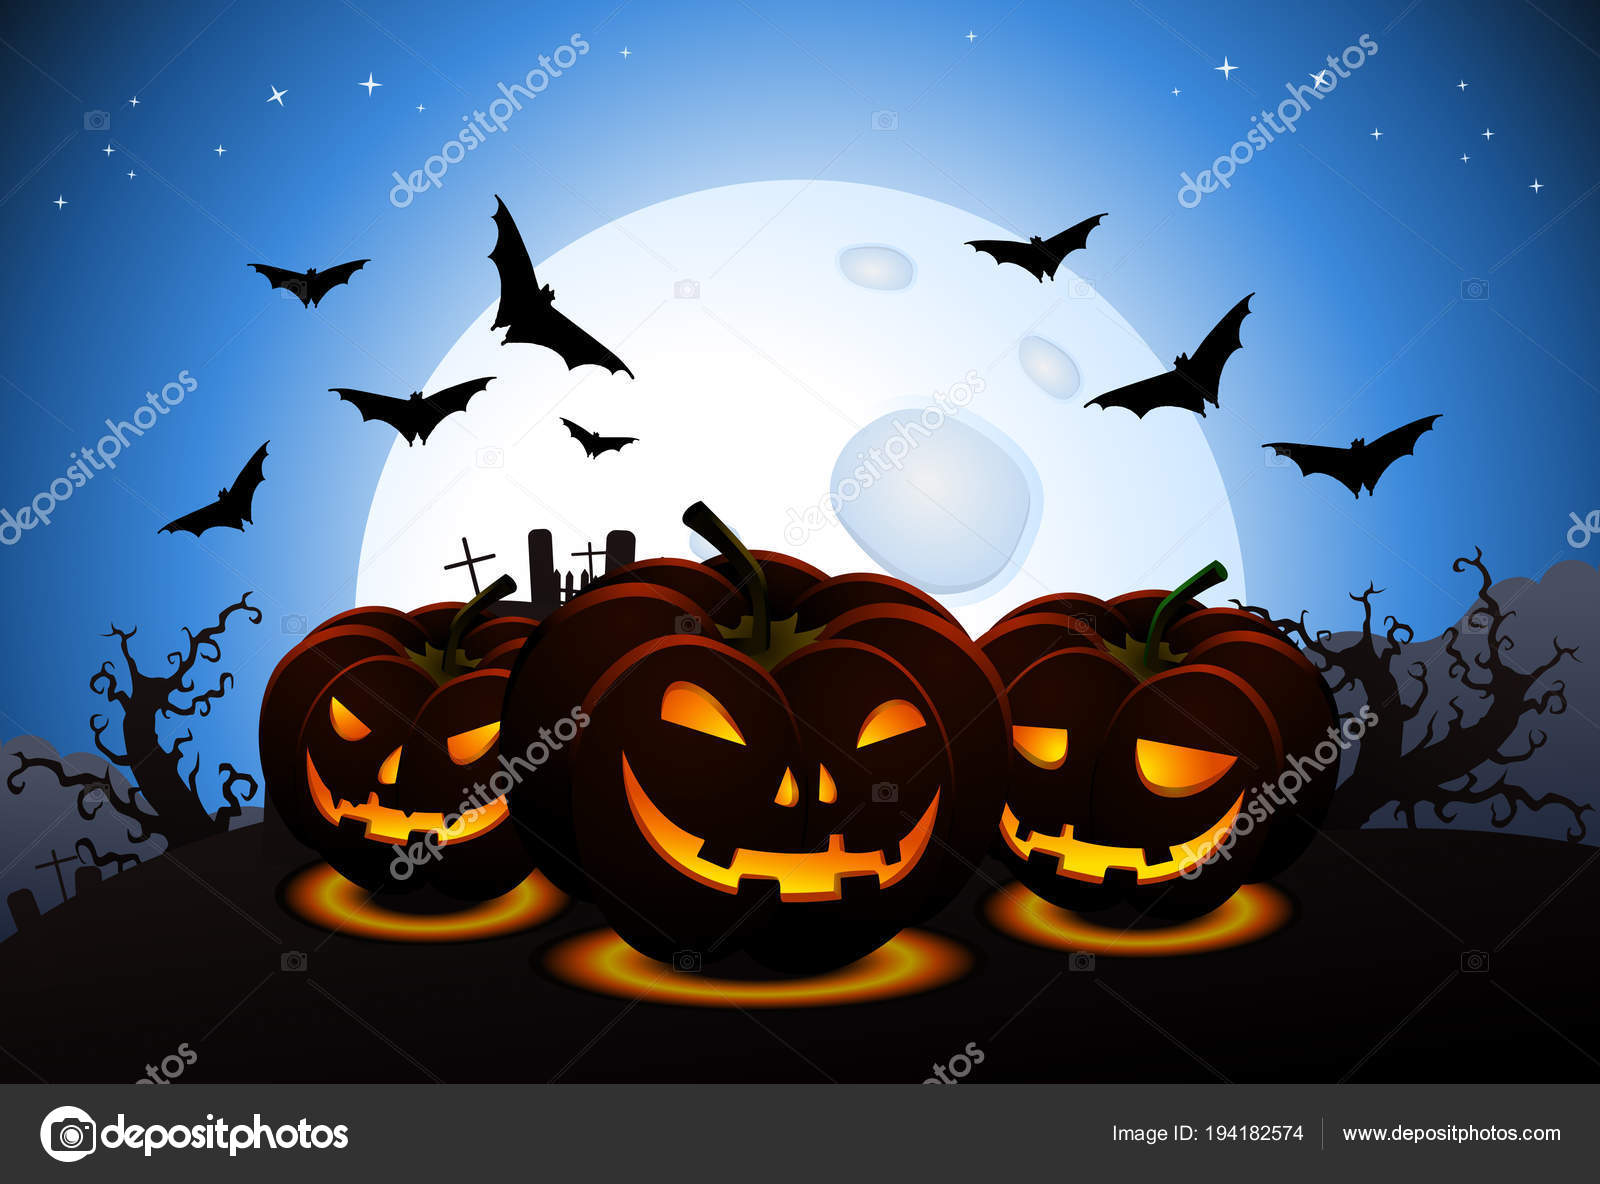 Wallpapers scary halloween wallpaper